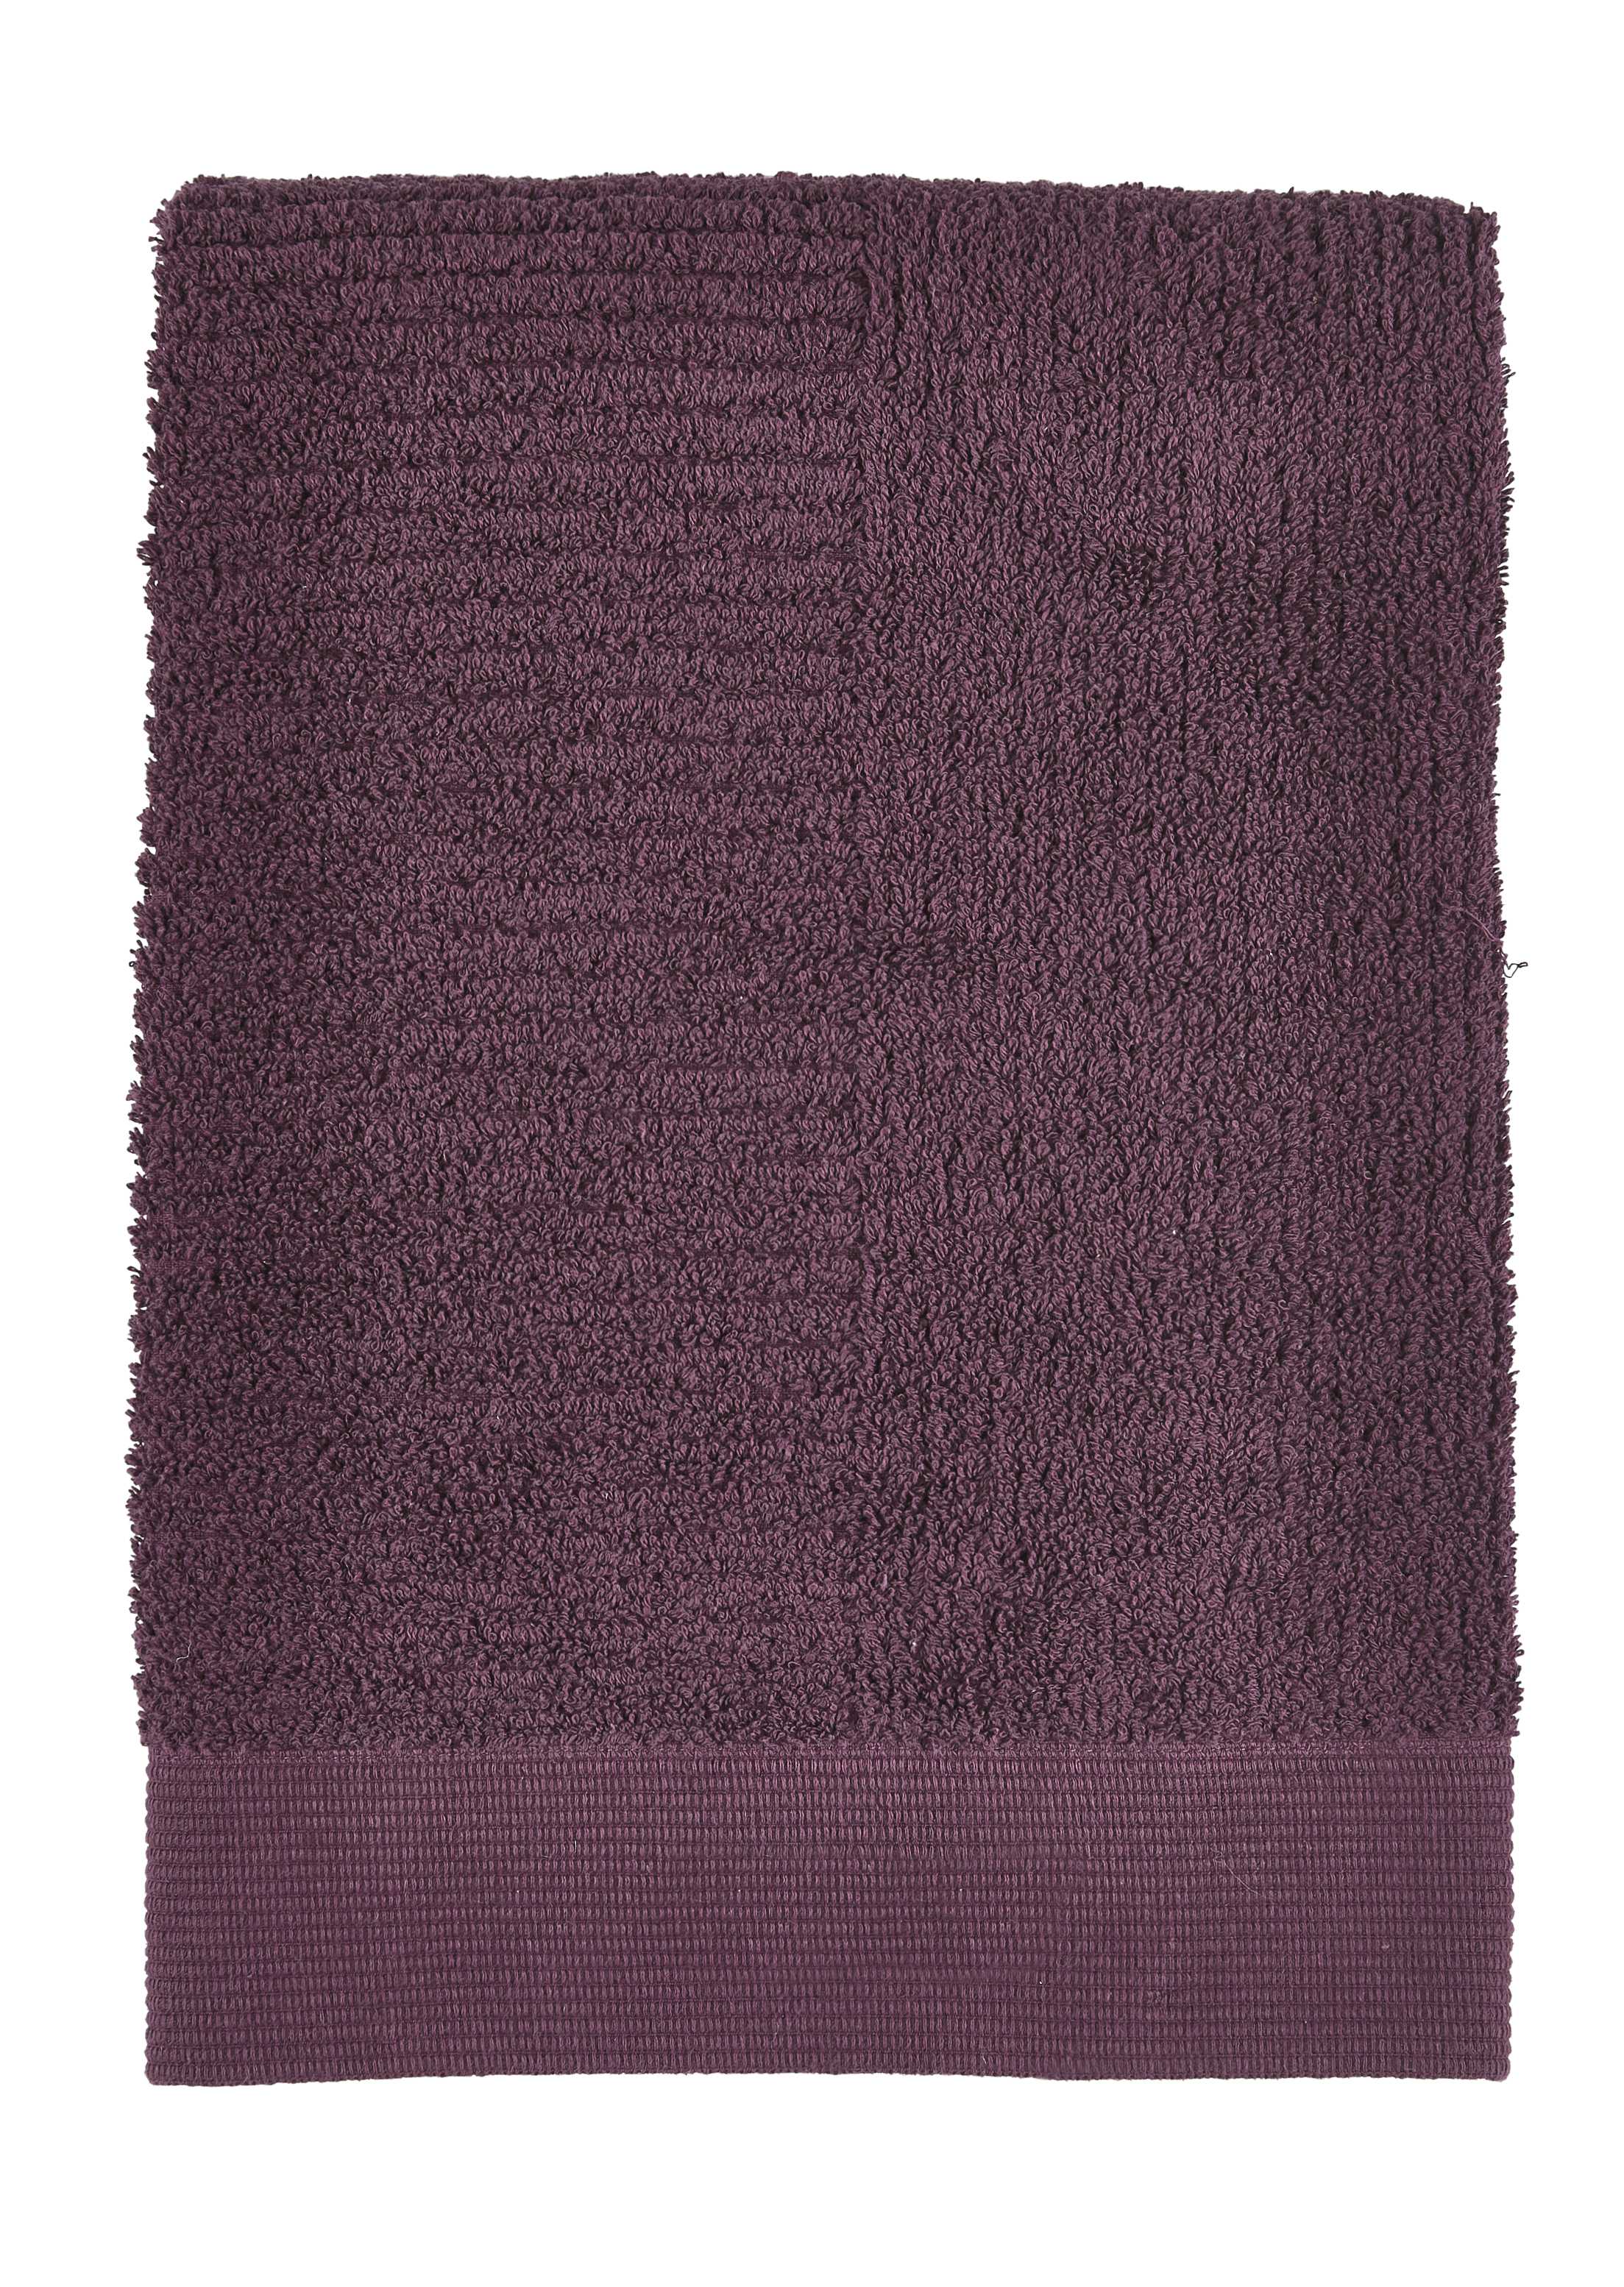 Zone - Classic Towel 70 x 140 cm  - Velvet Purple (330330)